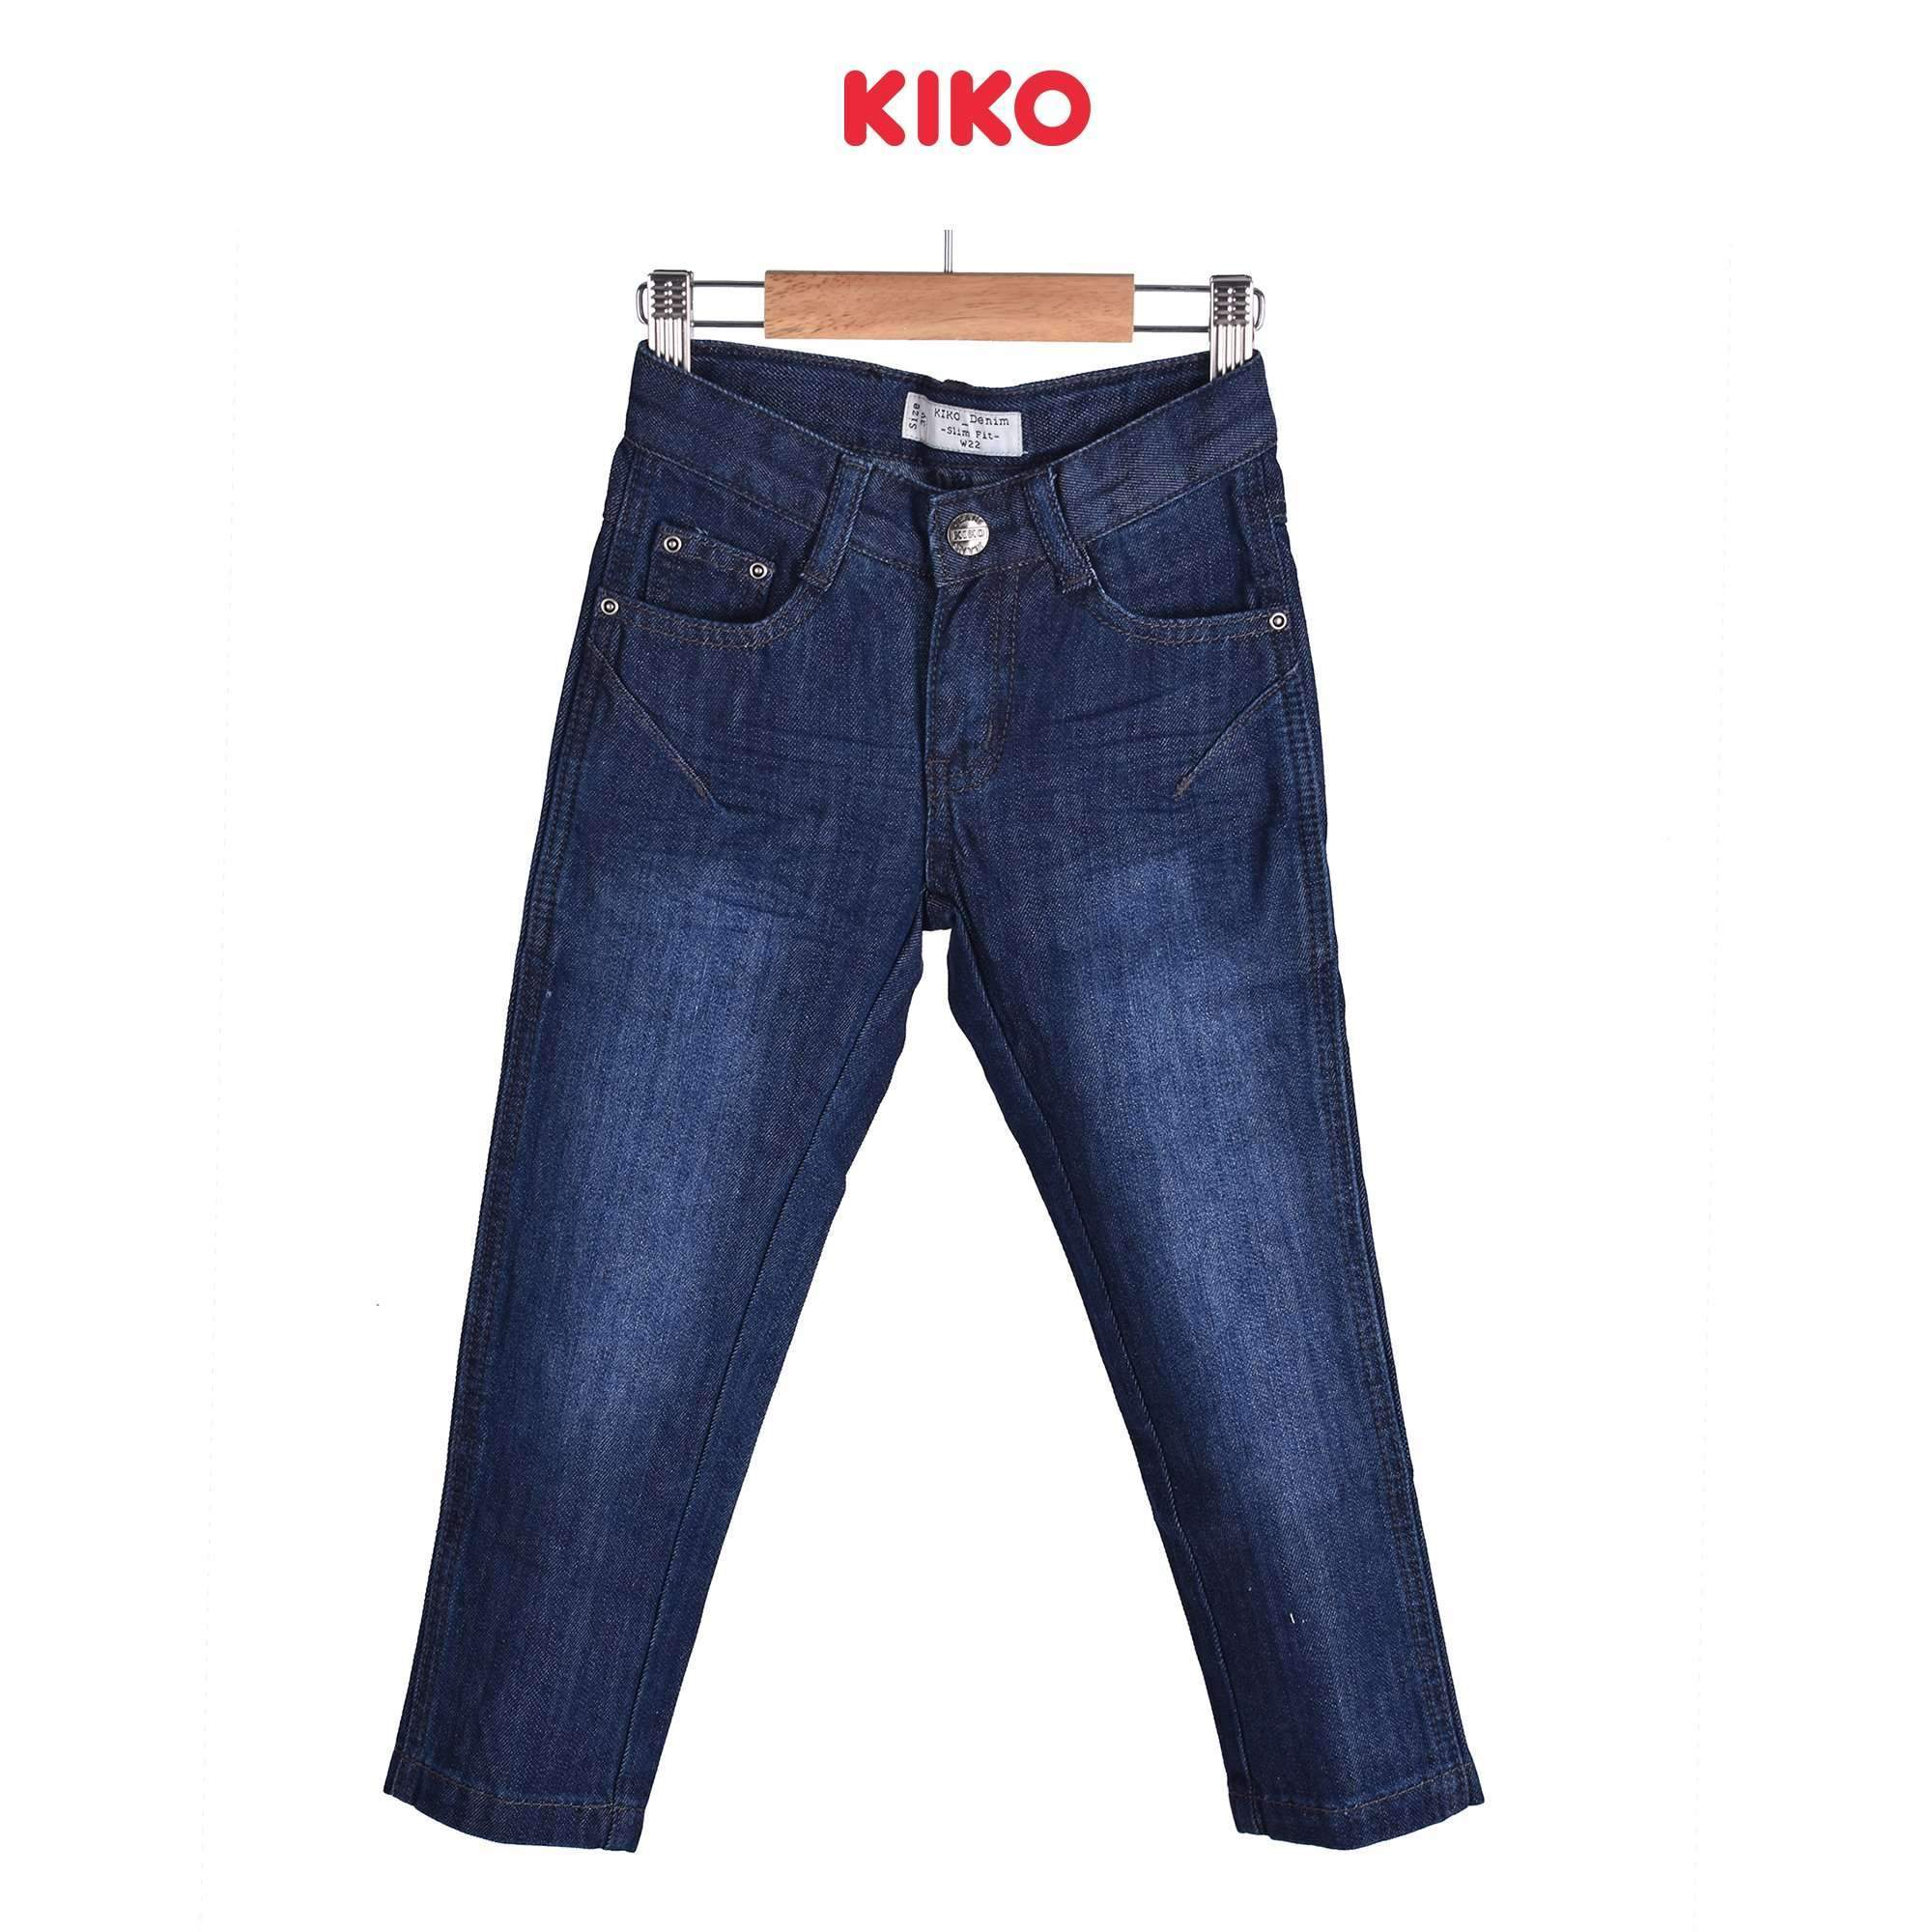 KIKO Boy Jeans Slim Fit 110065-215 : Buy KIKO online at CMG.MY